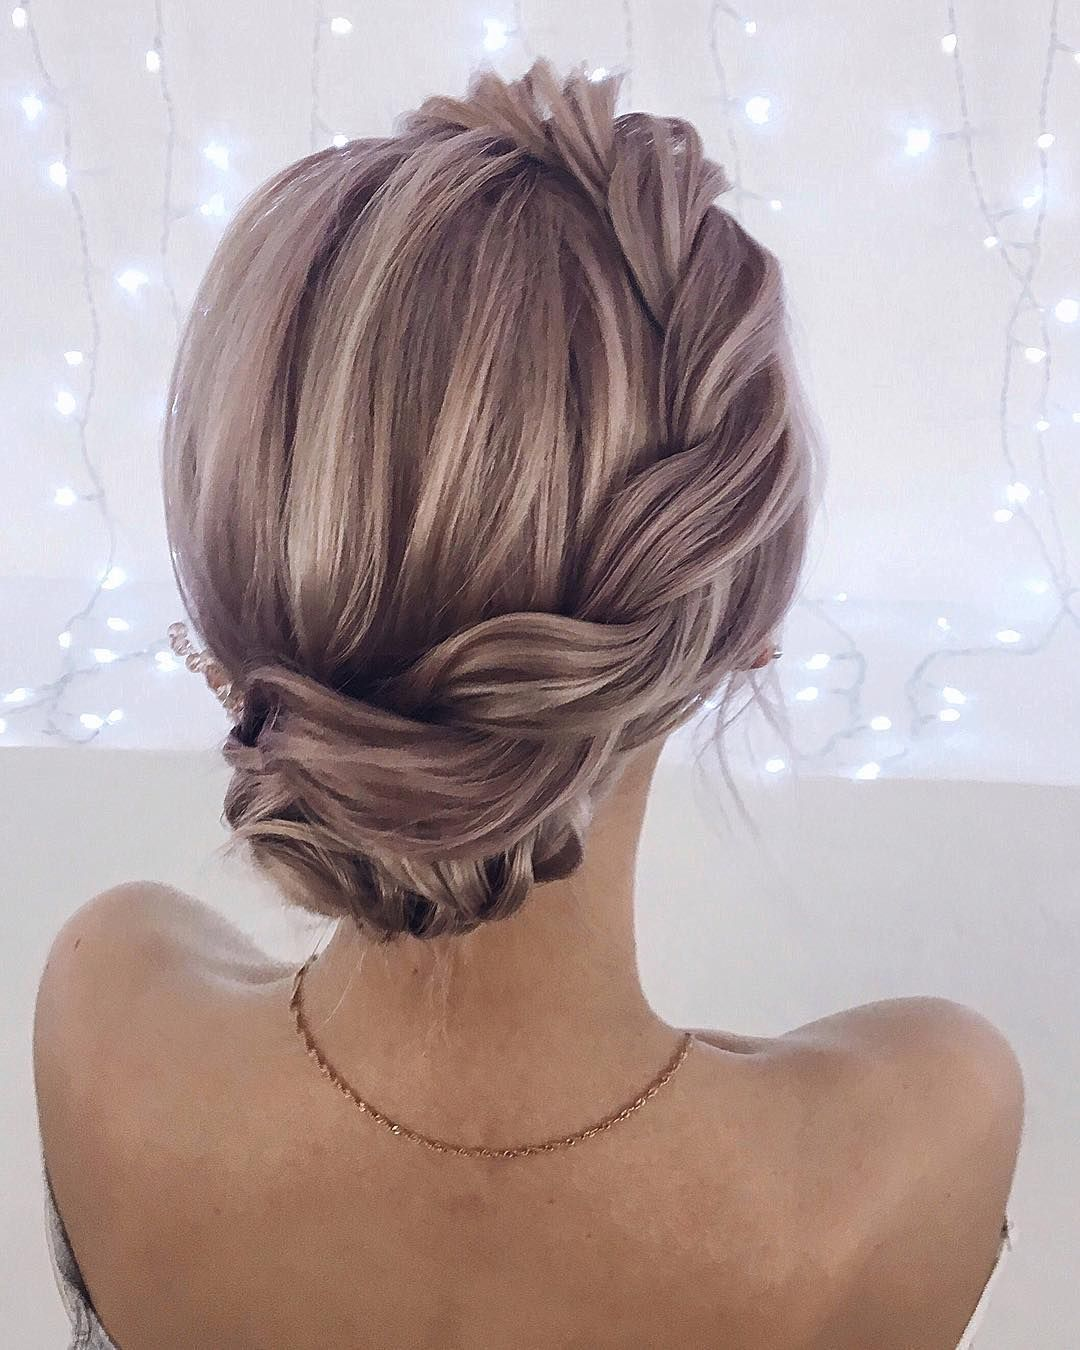 Wedding Hairstyle Hacks: Unique Low Updo With Side Detail! 💕 GO TO: Eva-darling.com